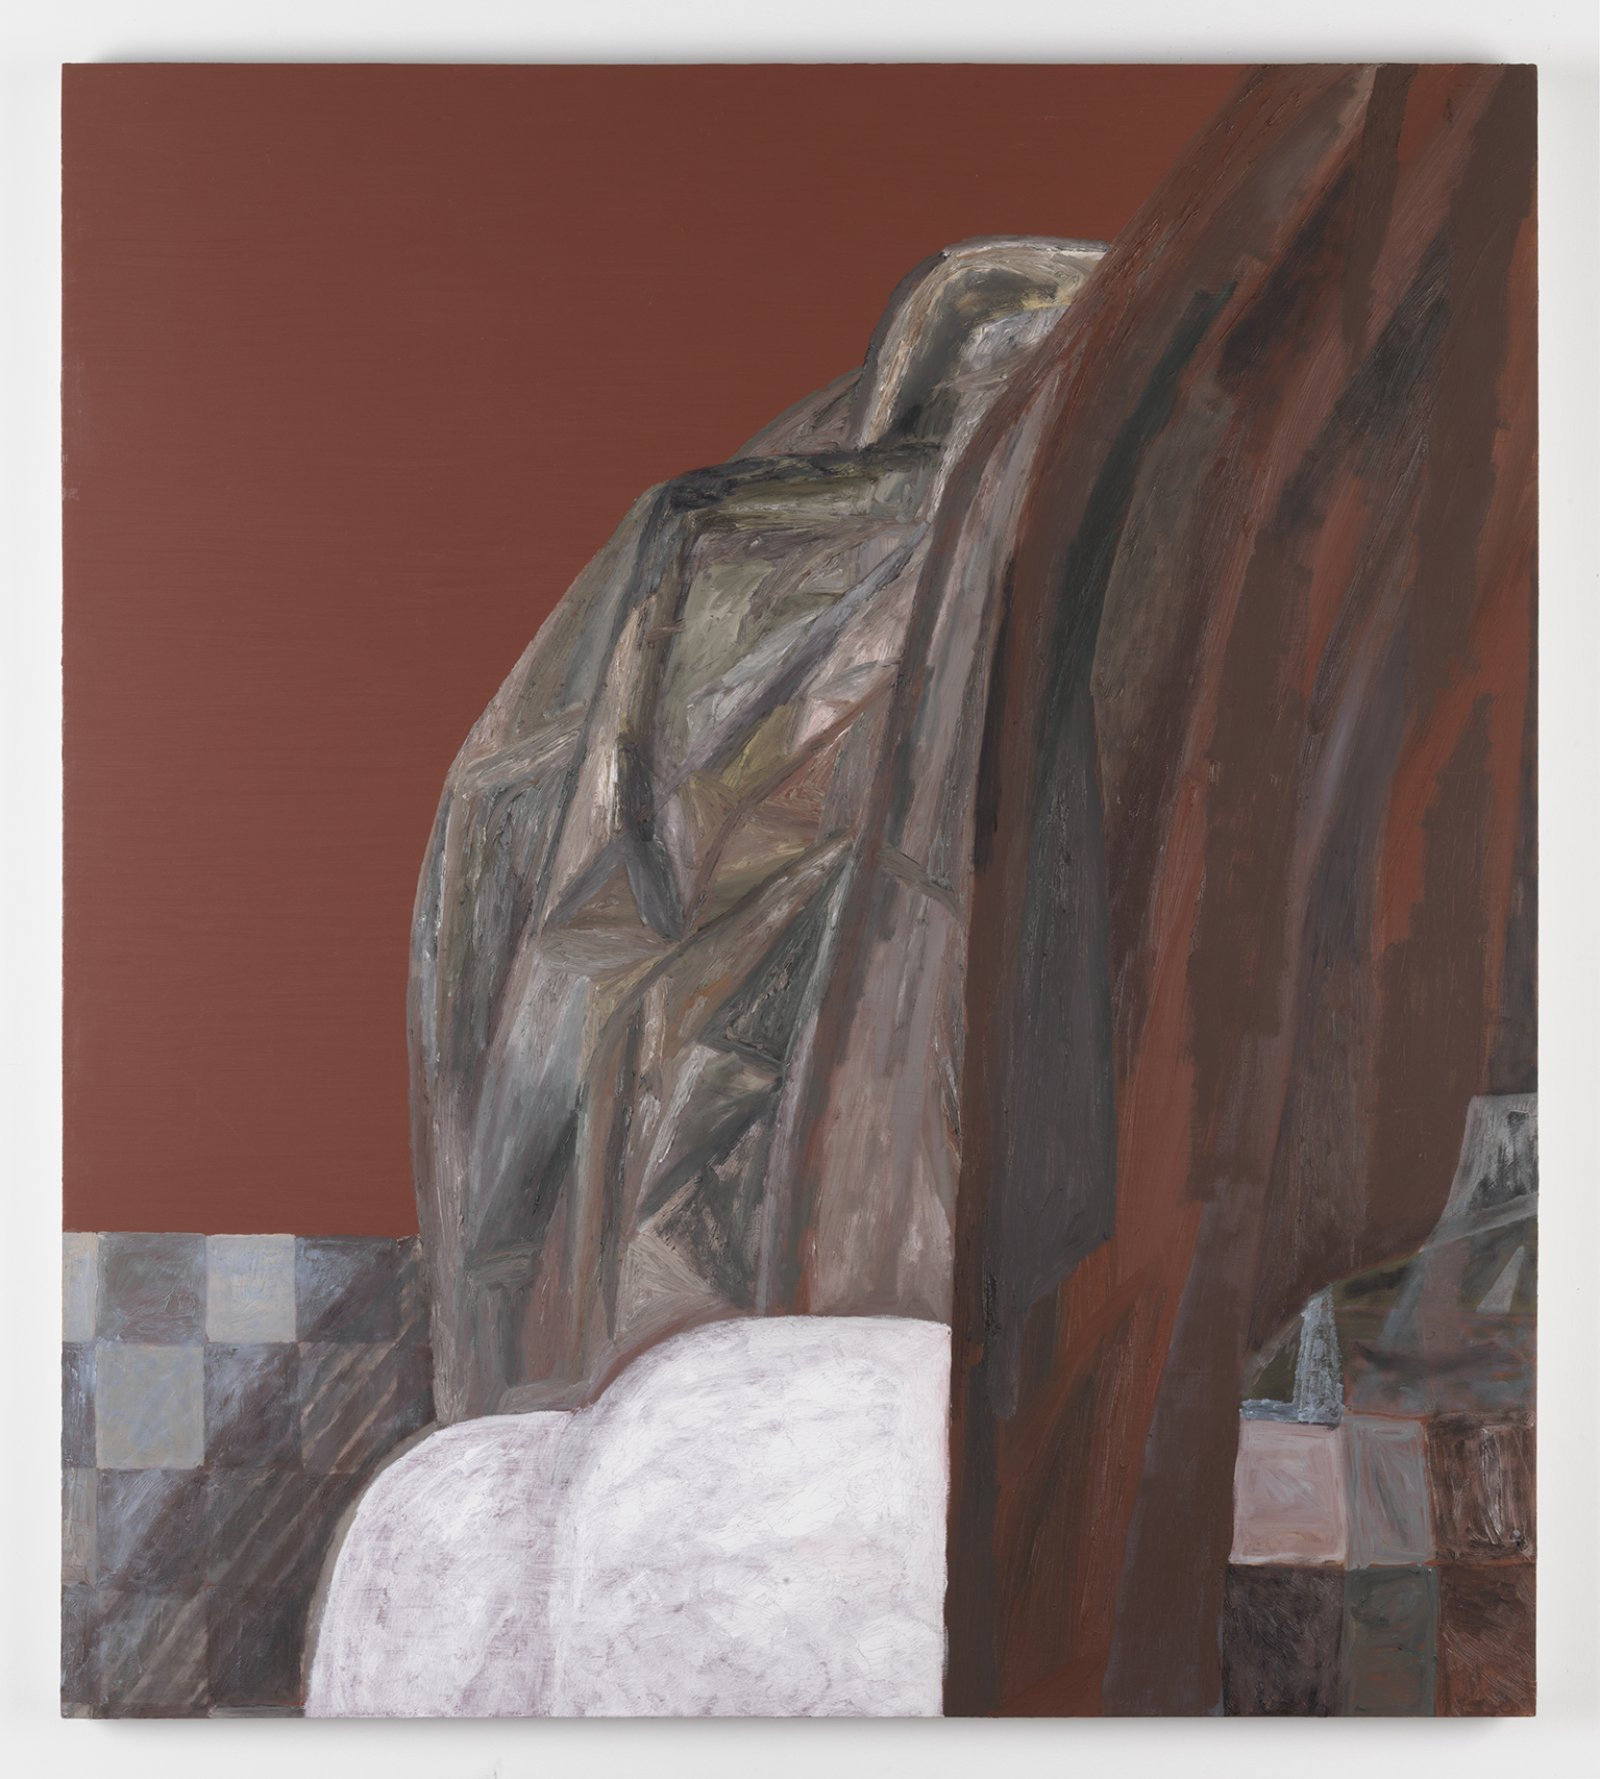 Rebecca Brewer, Curtain, 2011-2012, oil on panel, 47 x 42 in. (120 x 107 cm)